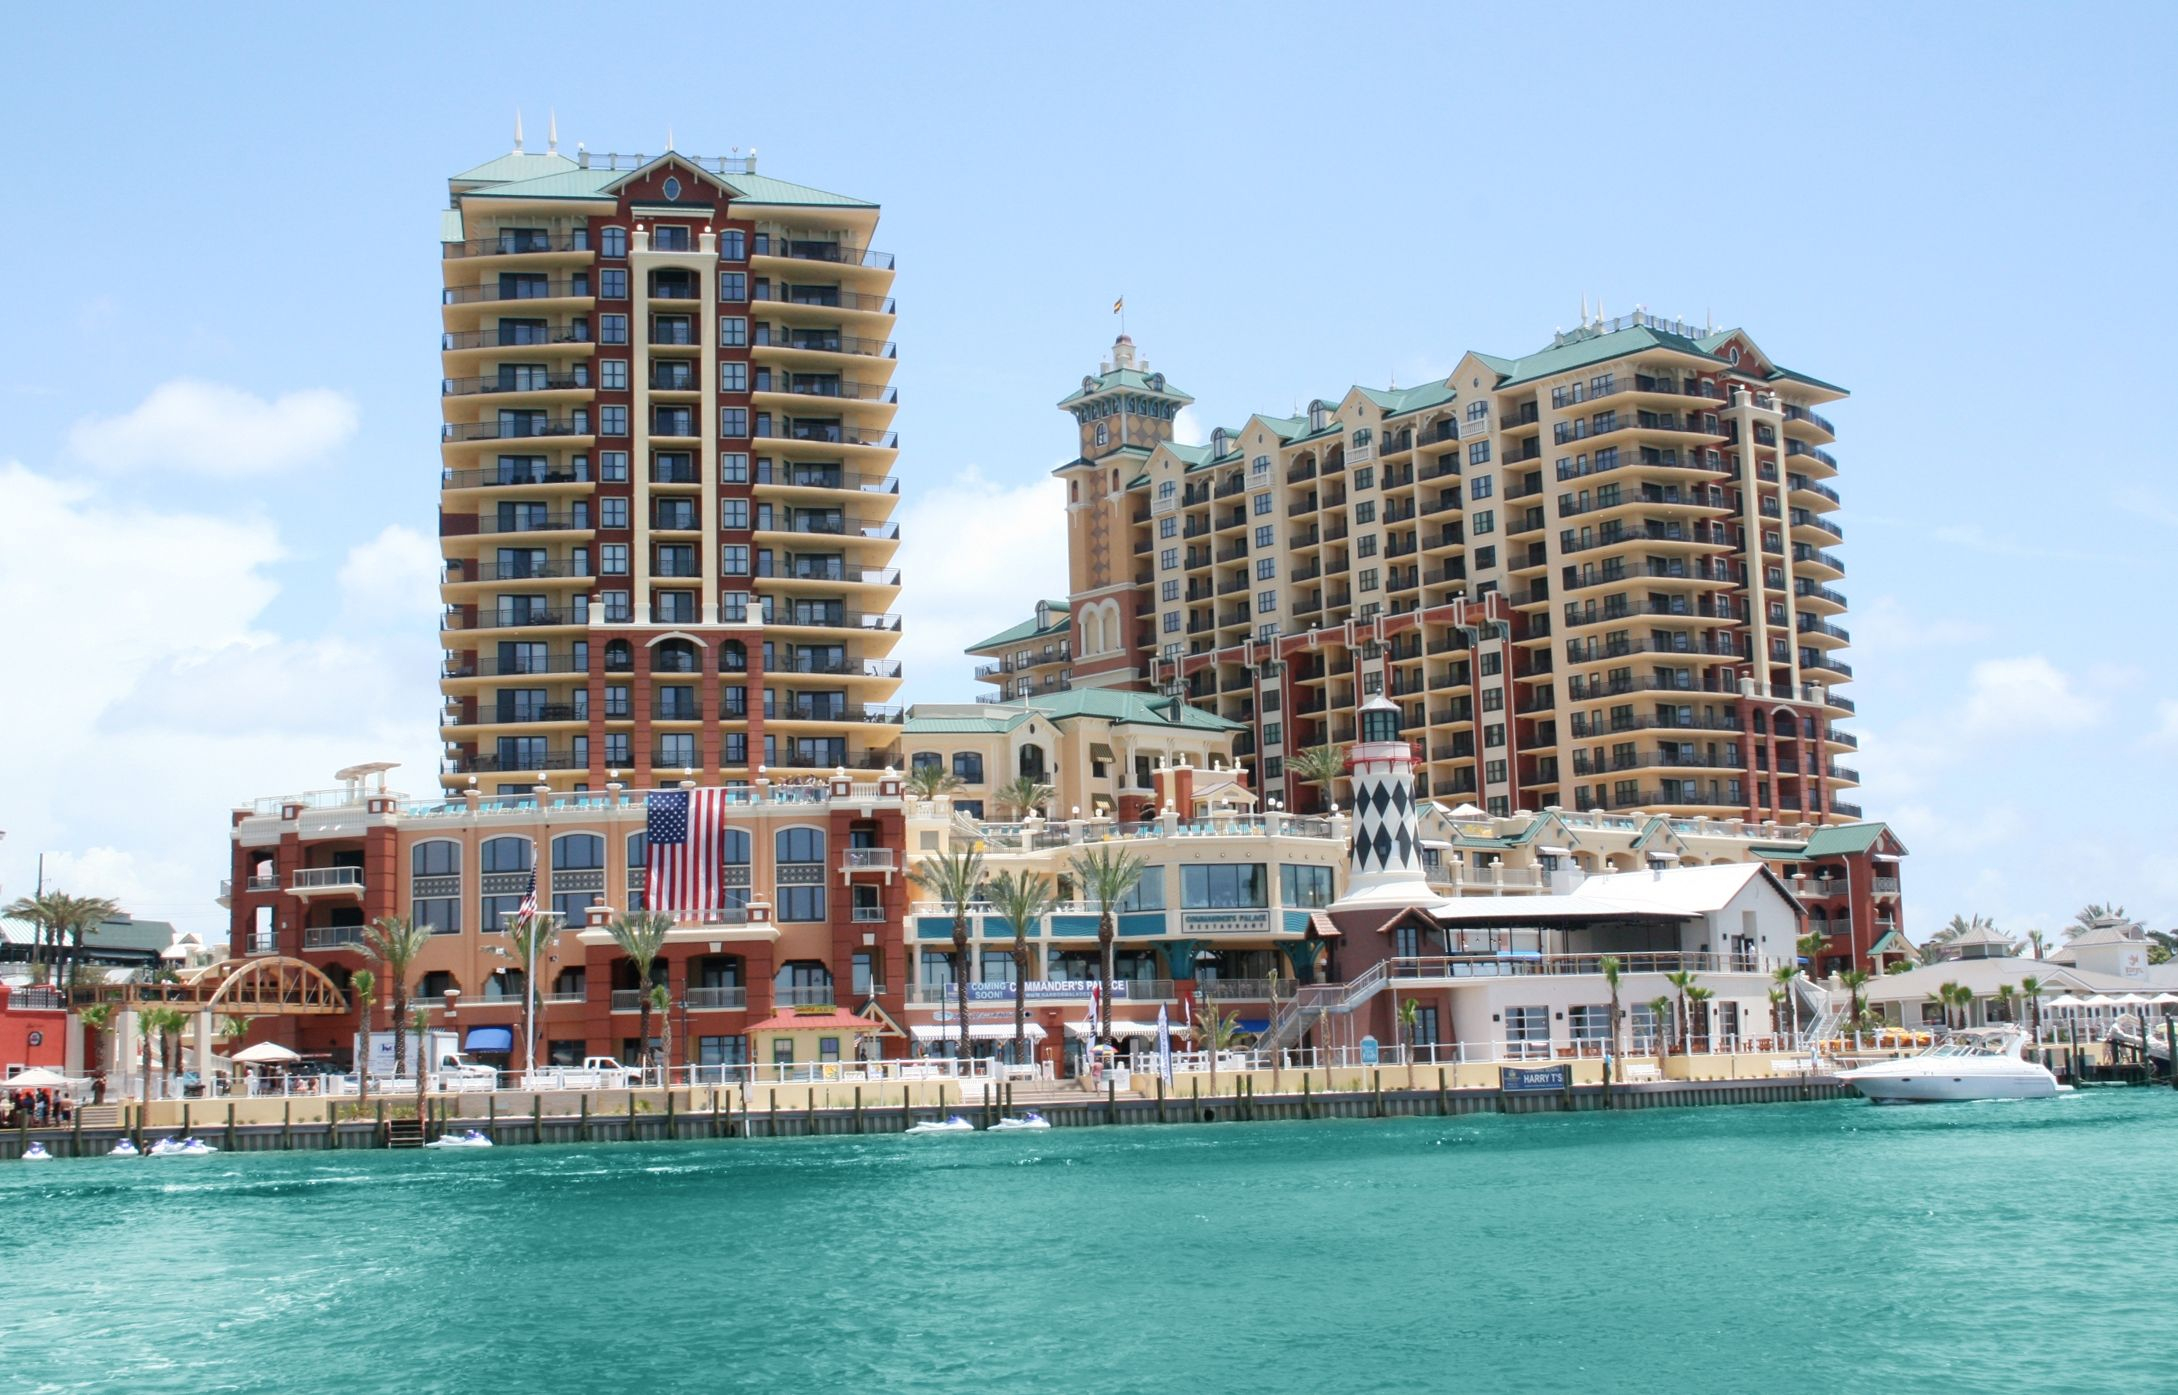 Hotels - Map Of Hotels In Destin Florida